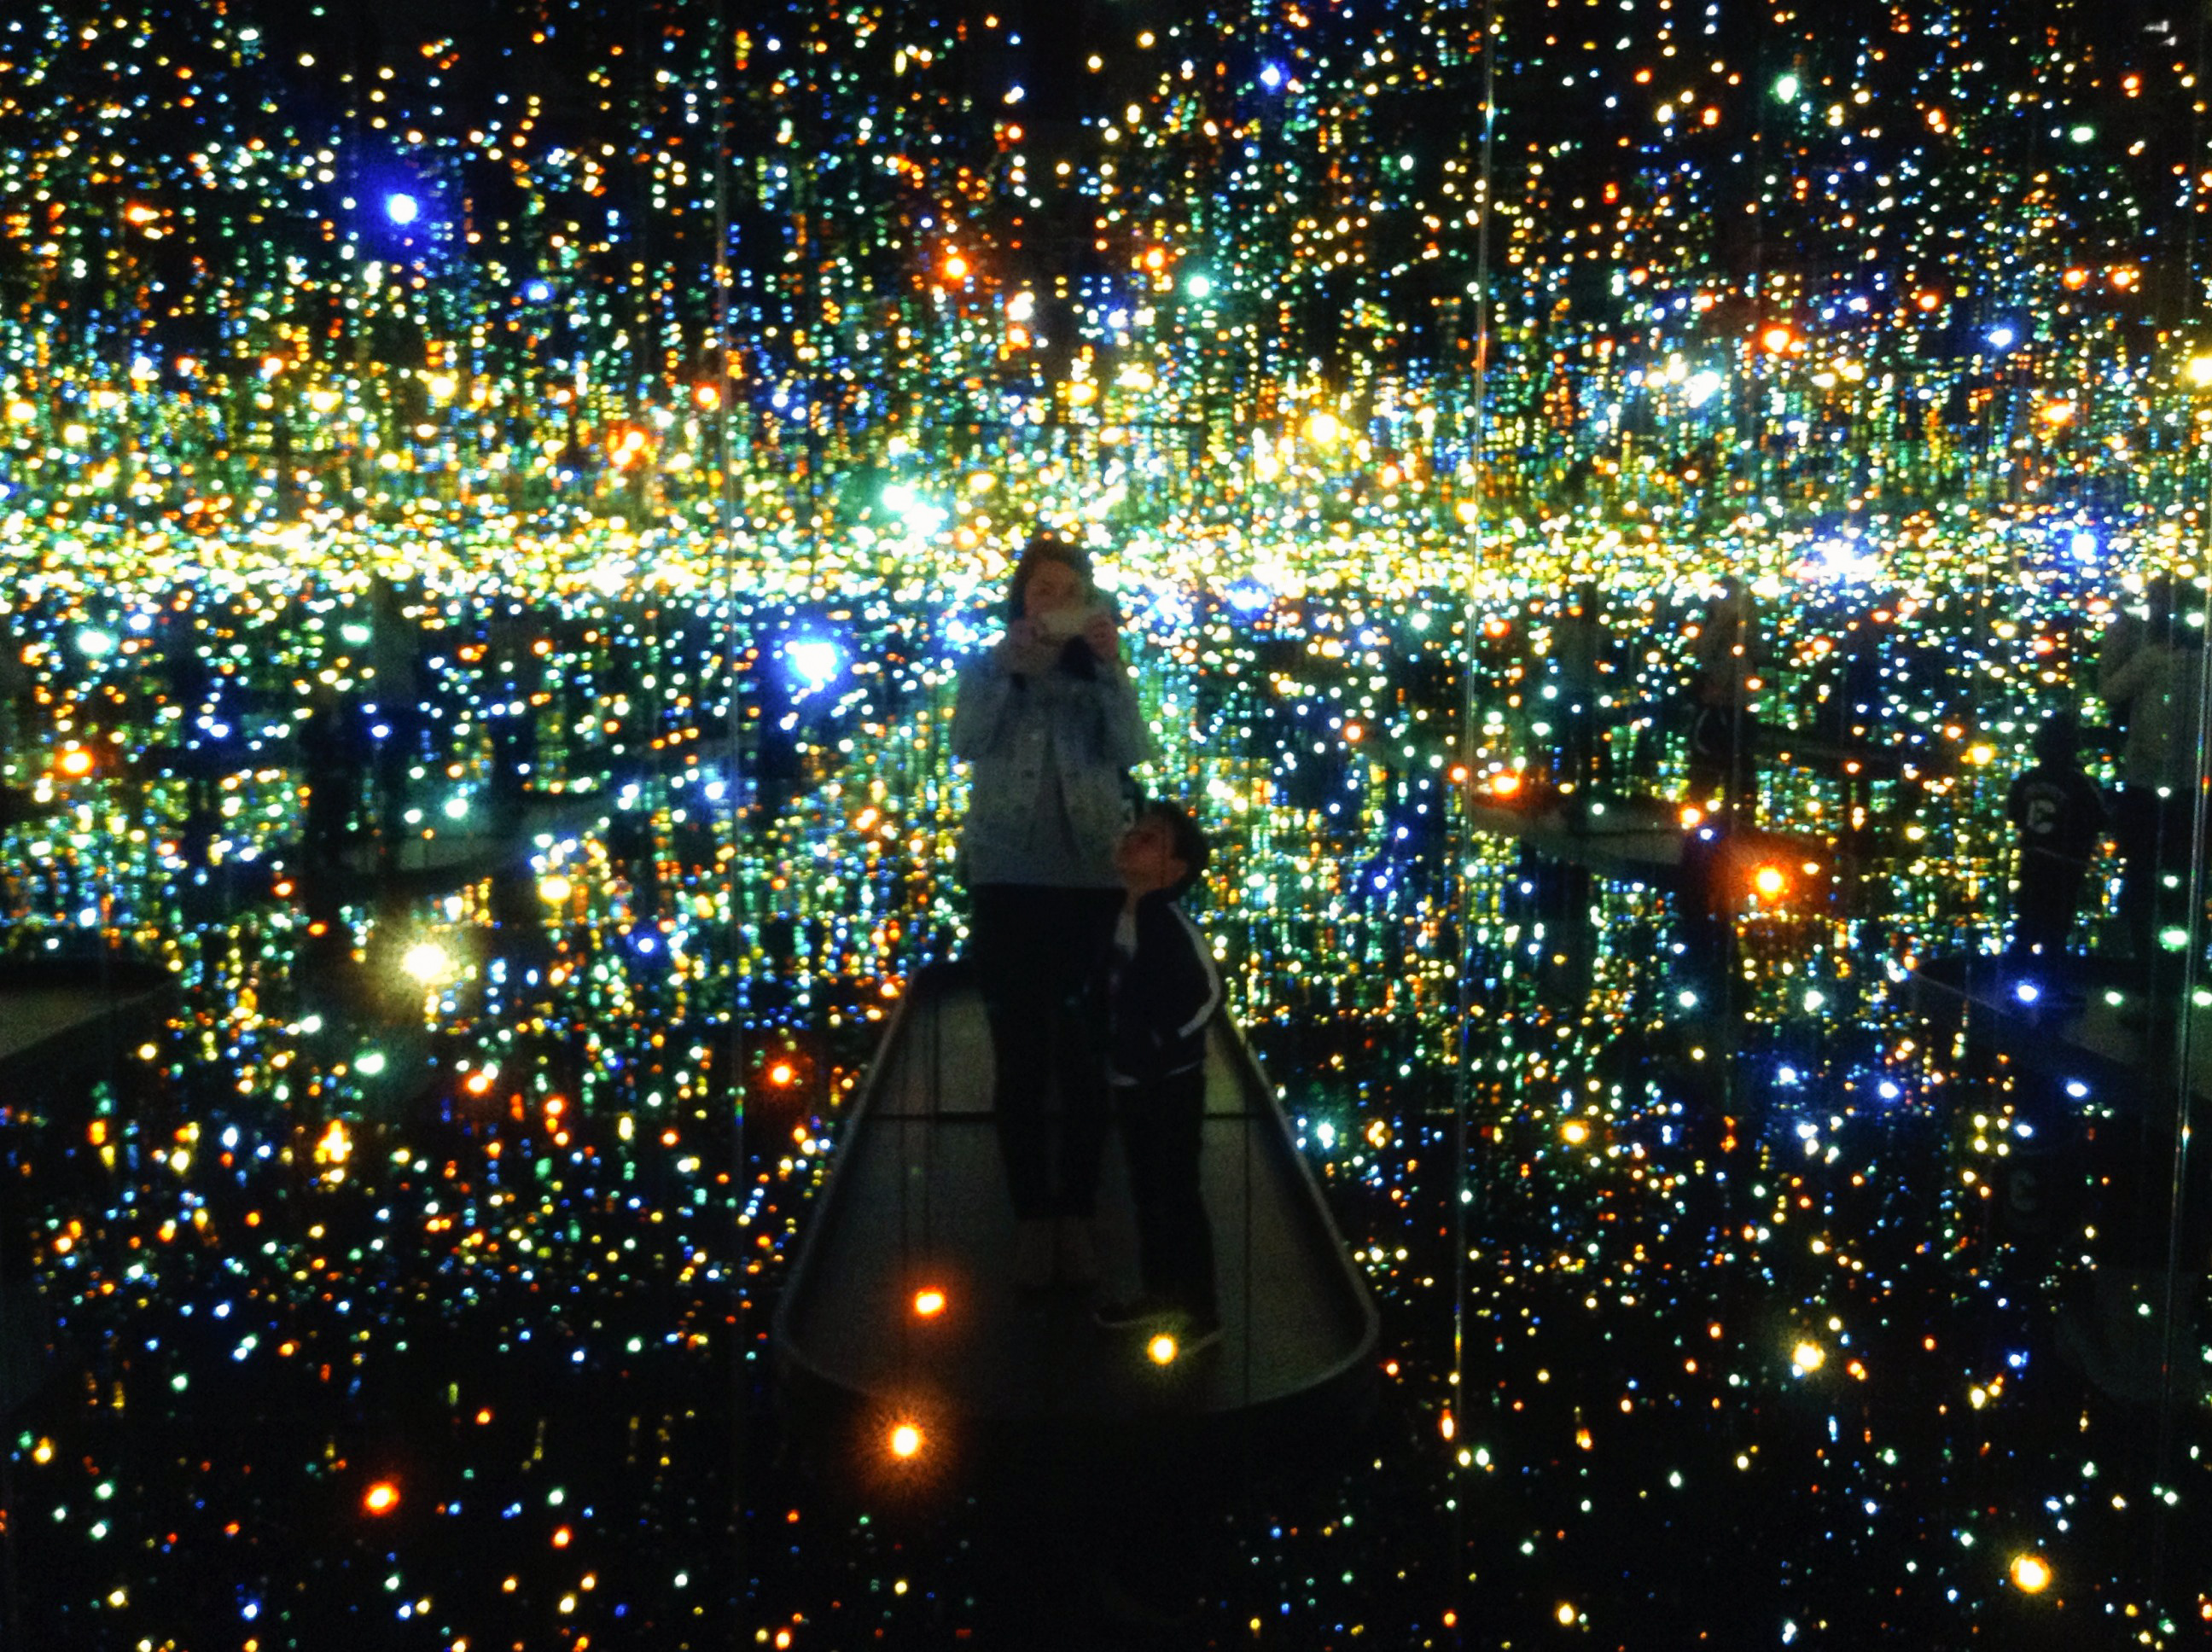 What To Expect At The Yayoi Kusama Exhibit In Washington